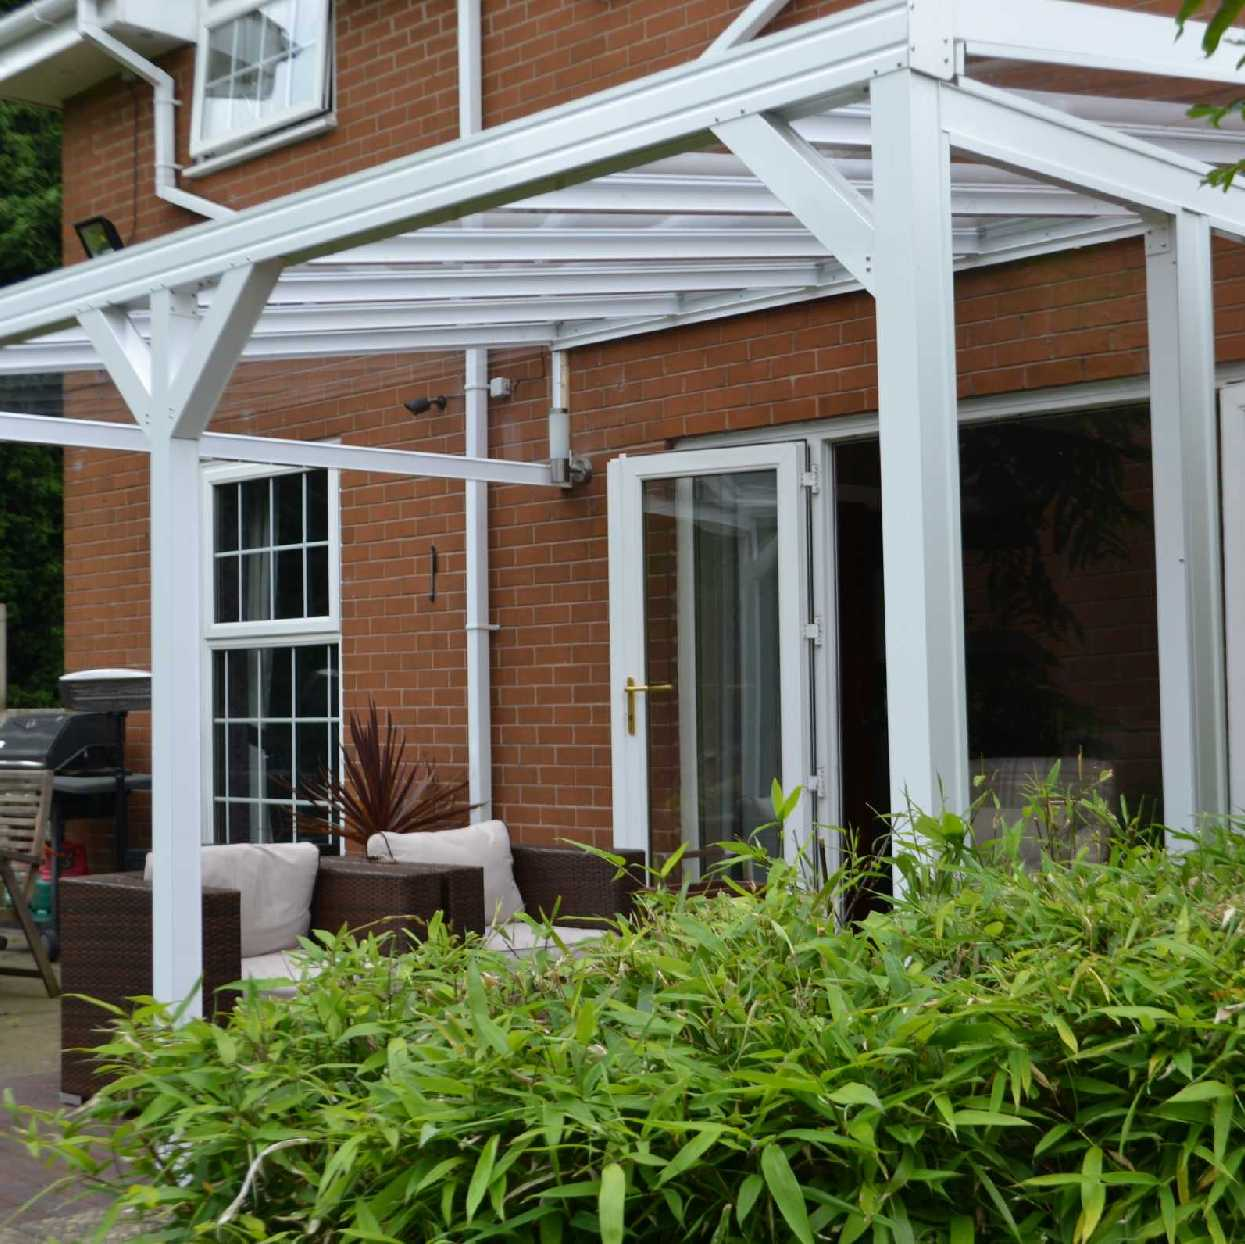 Omega Smart White Lean-To Canopy UNGLAZED for 6mm Glazing - 9.8m (W) x 1.5m (P), (5) Supporting Posts from Omega Build